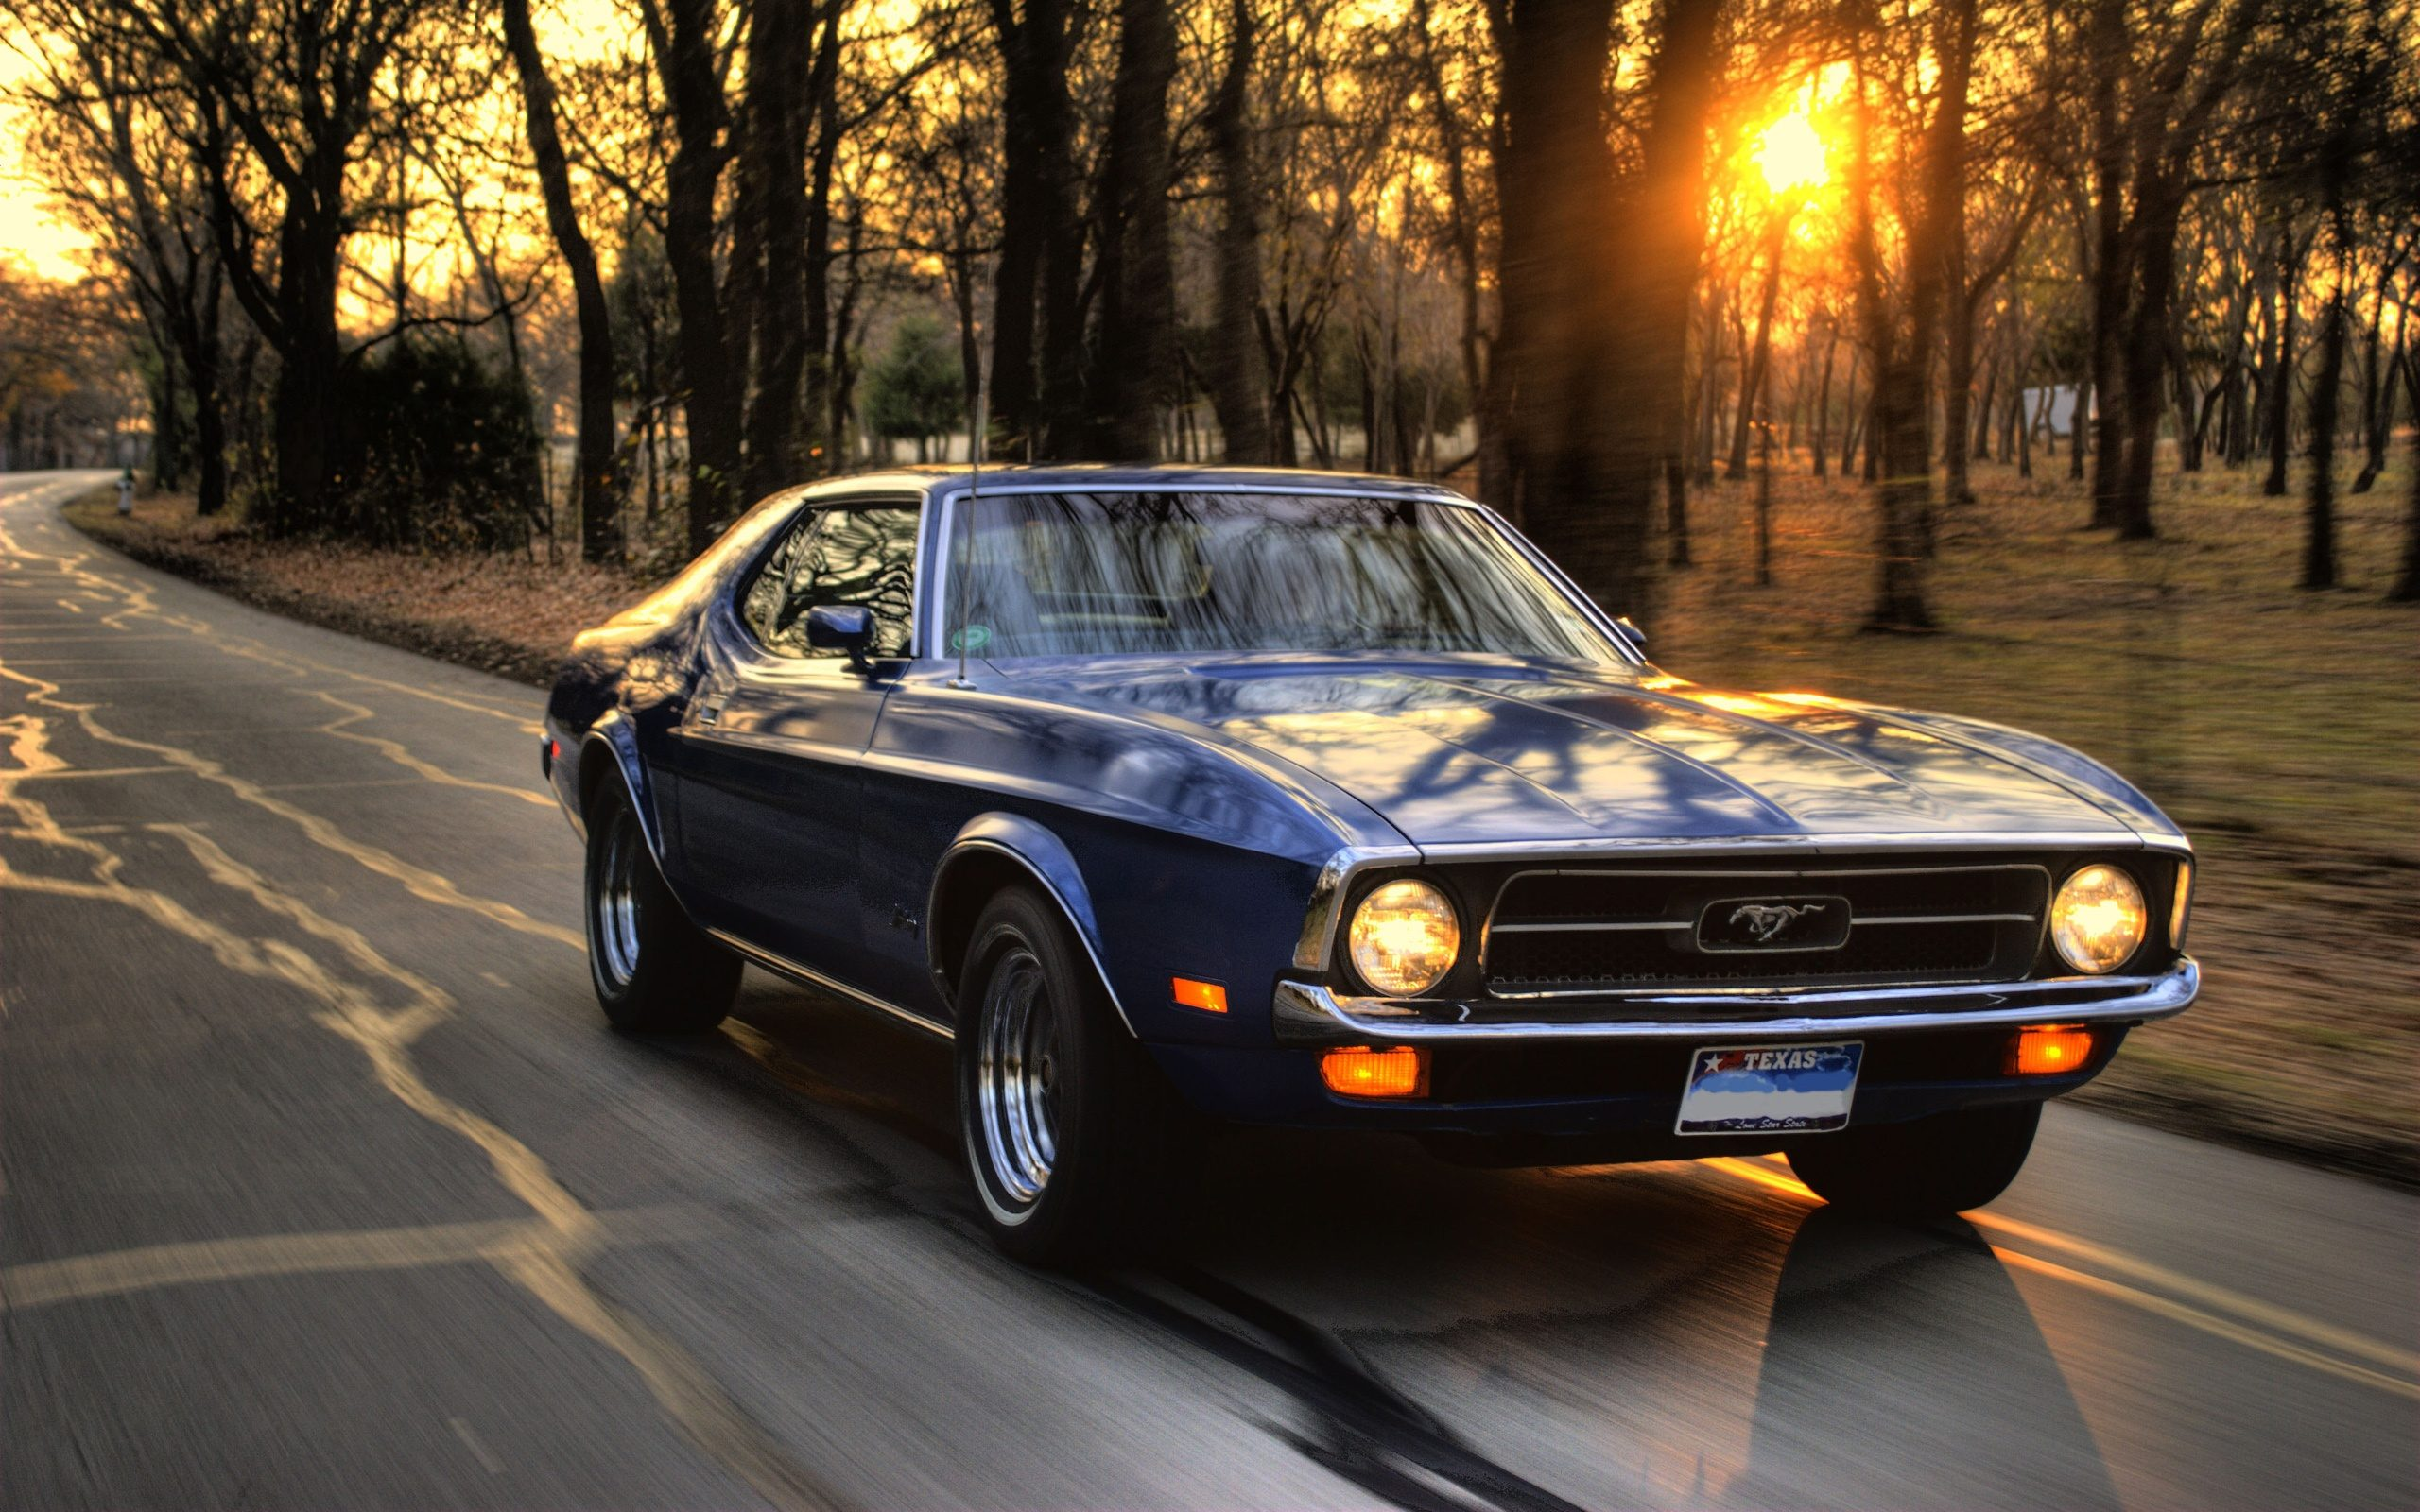 Ford-Mustang-speed-at-sunset_2560x1600.jpg